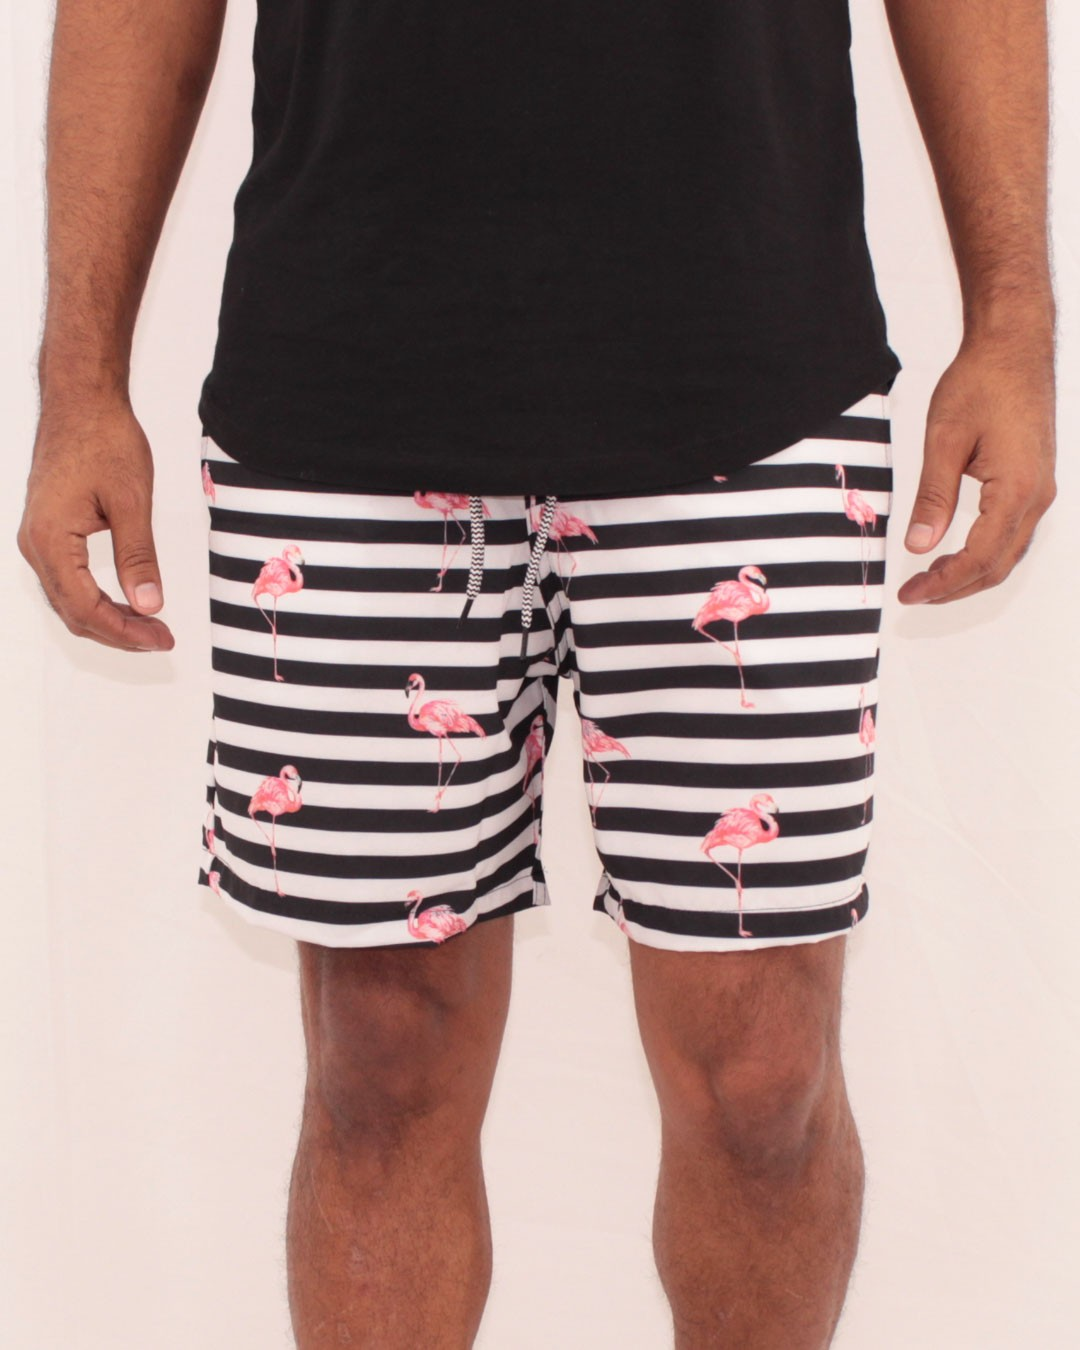 SHORTS MASCULINO LISTRAS E FLAMINGOS - ALL FREE